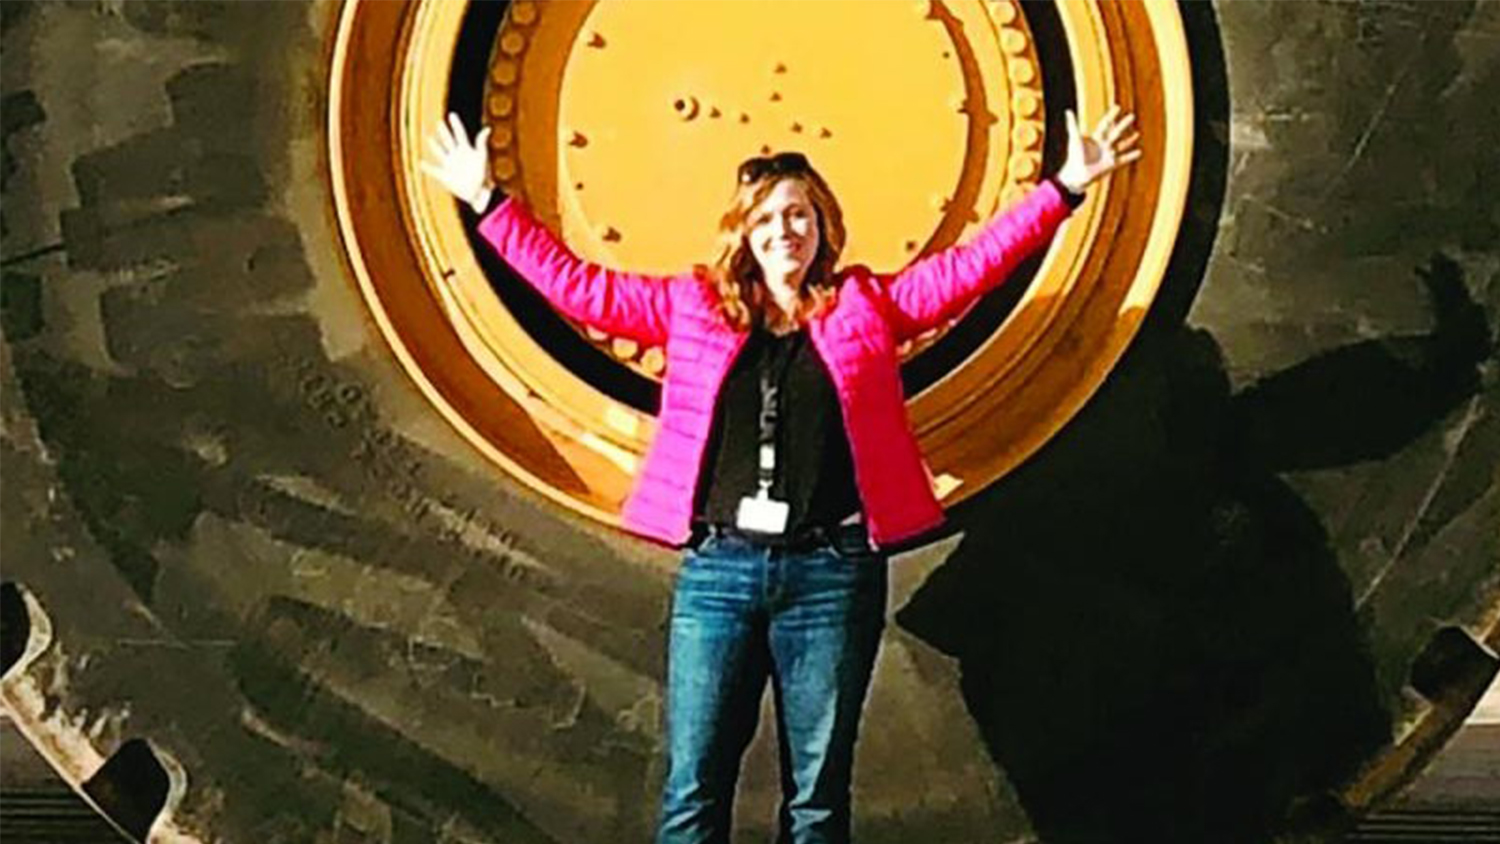 woman in front of large tire